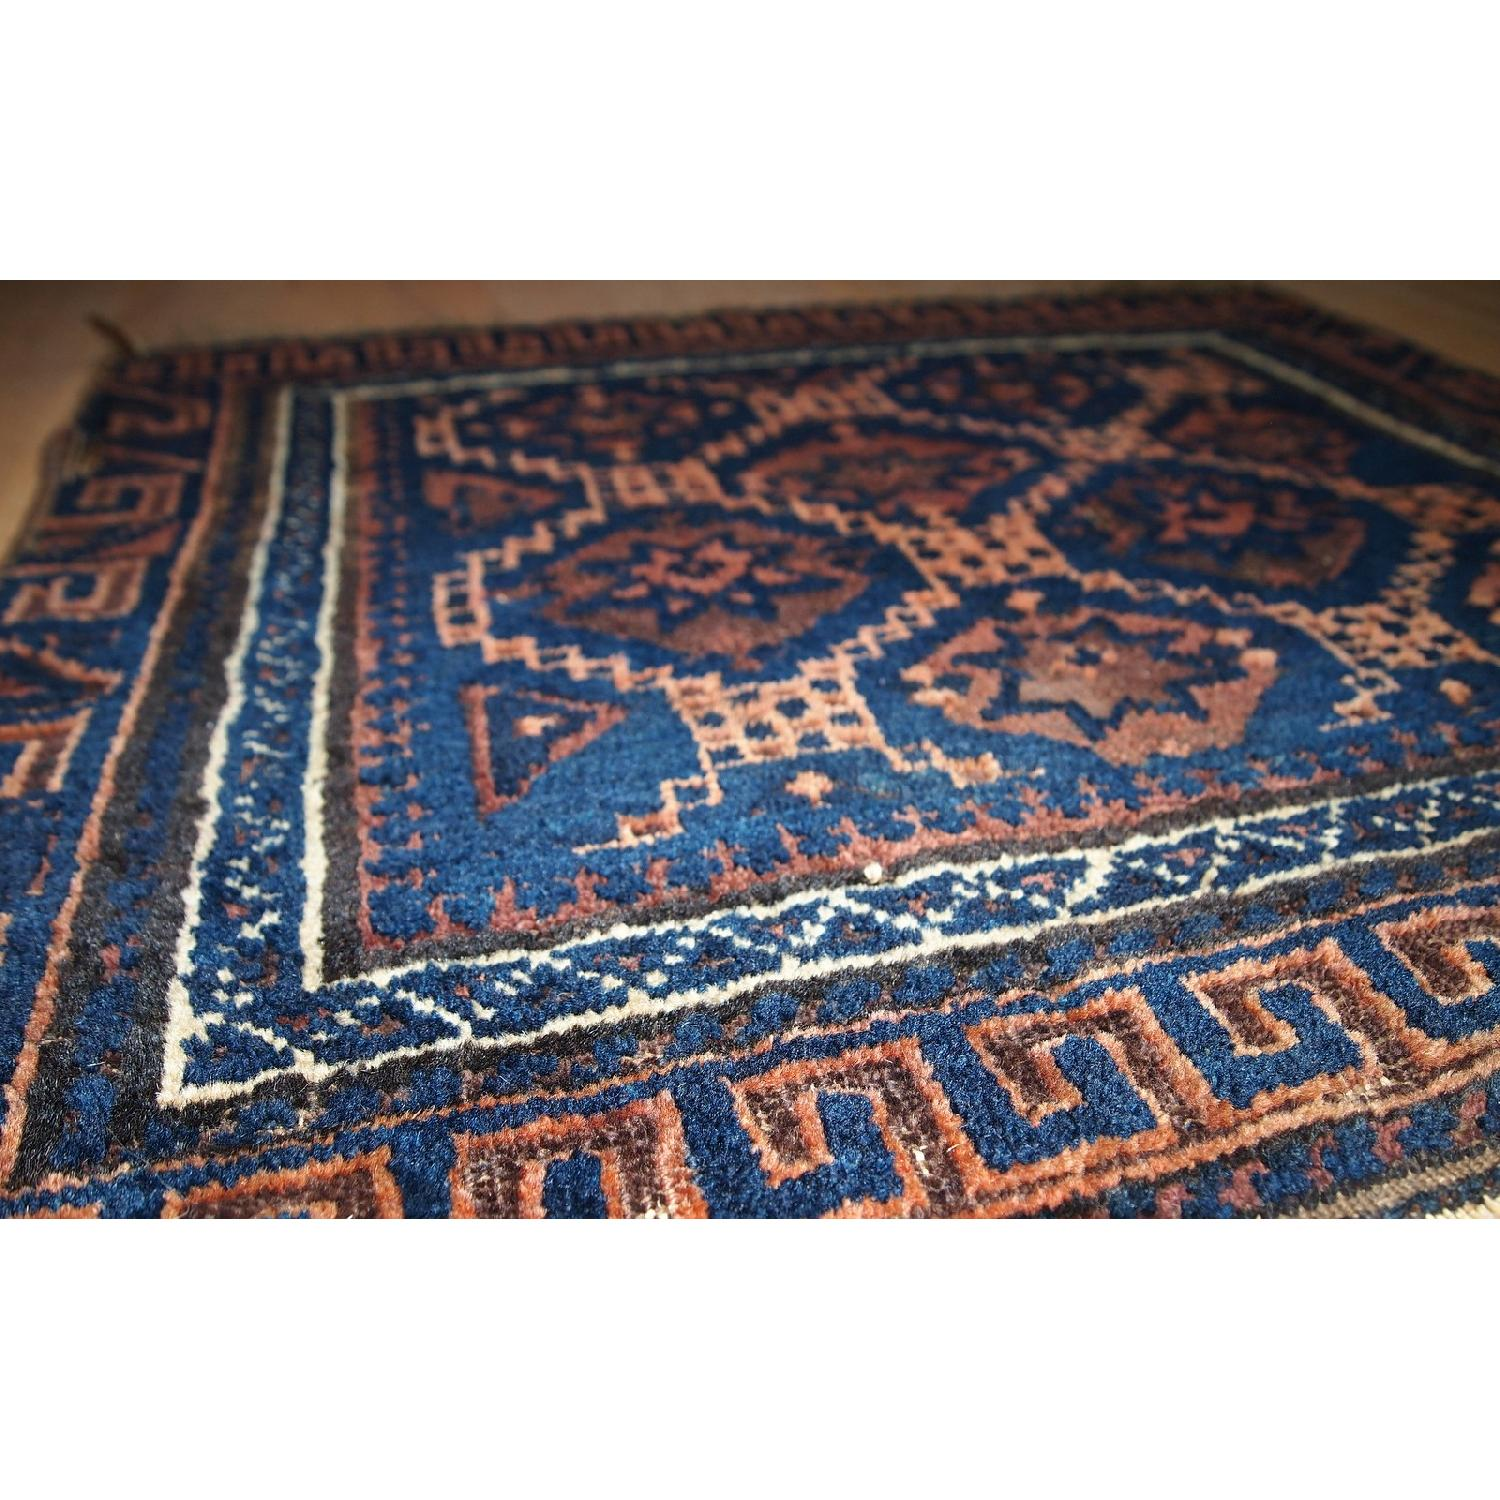 Antique Handmade Collectible Afghan Baluch Bag Face Rug-3